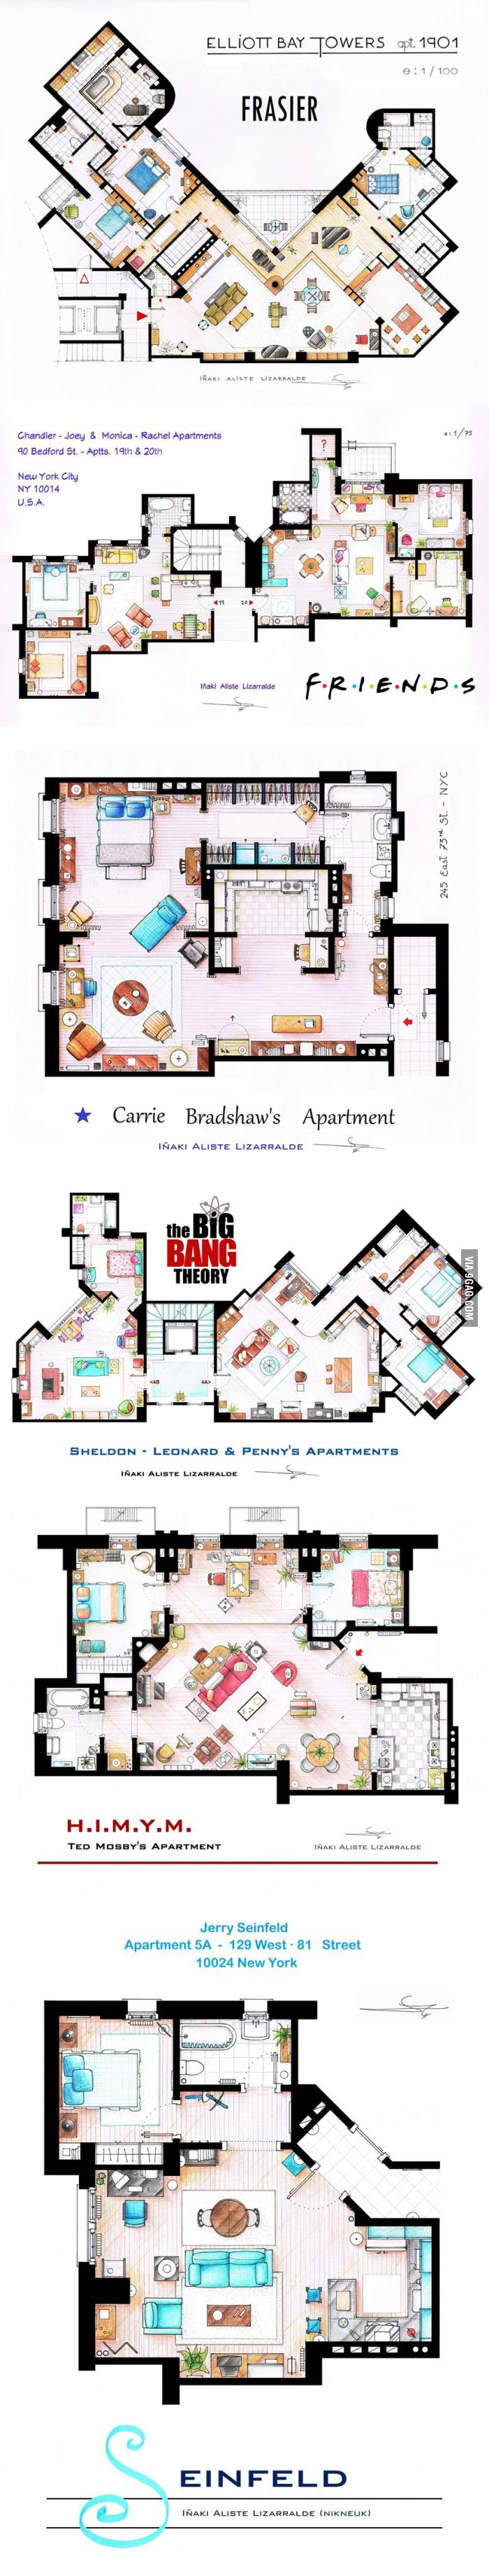 Floor plans from some TV series...Friends, How I Met Your Mother, Seinfeld, Frasier, Sex and the City, The Big Bang Theory #TV #apartments